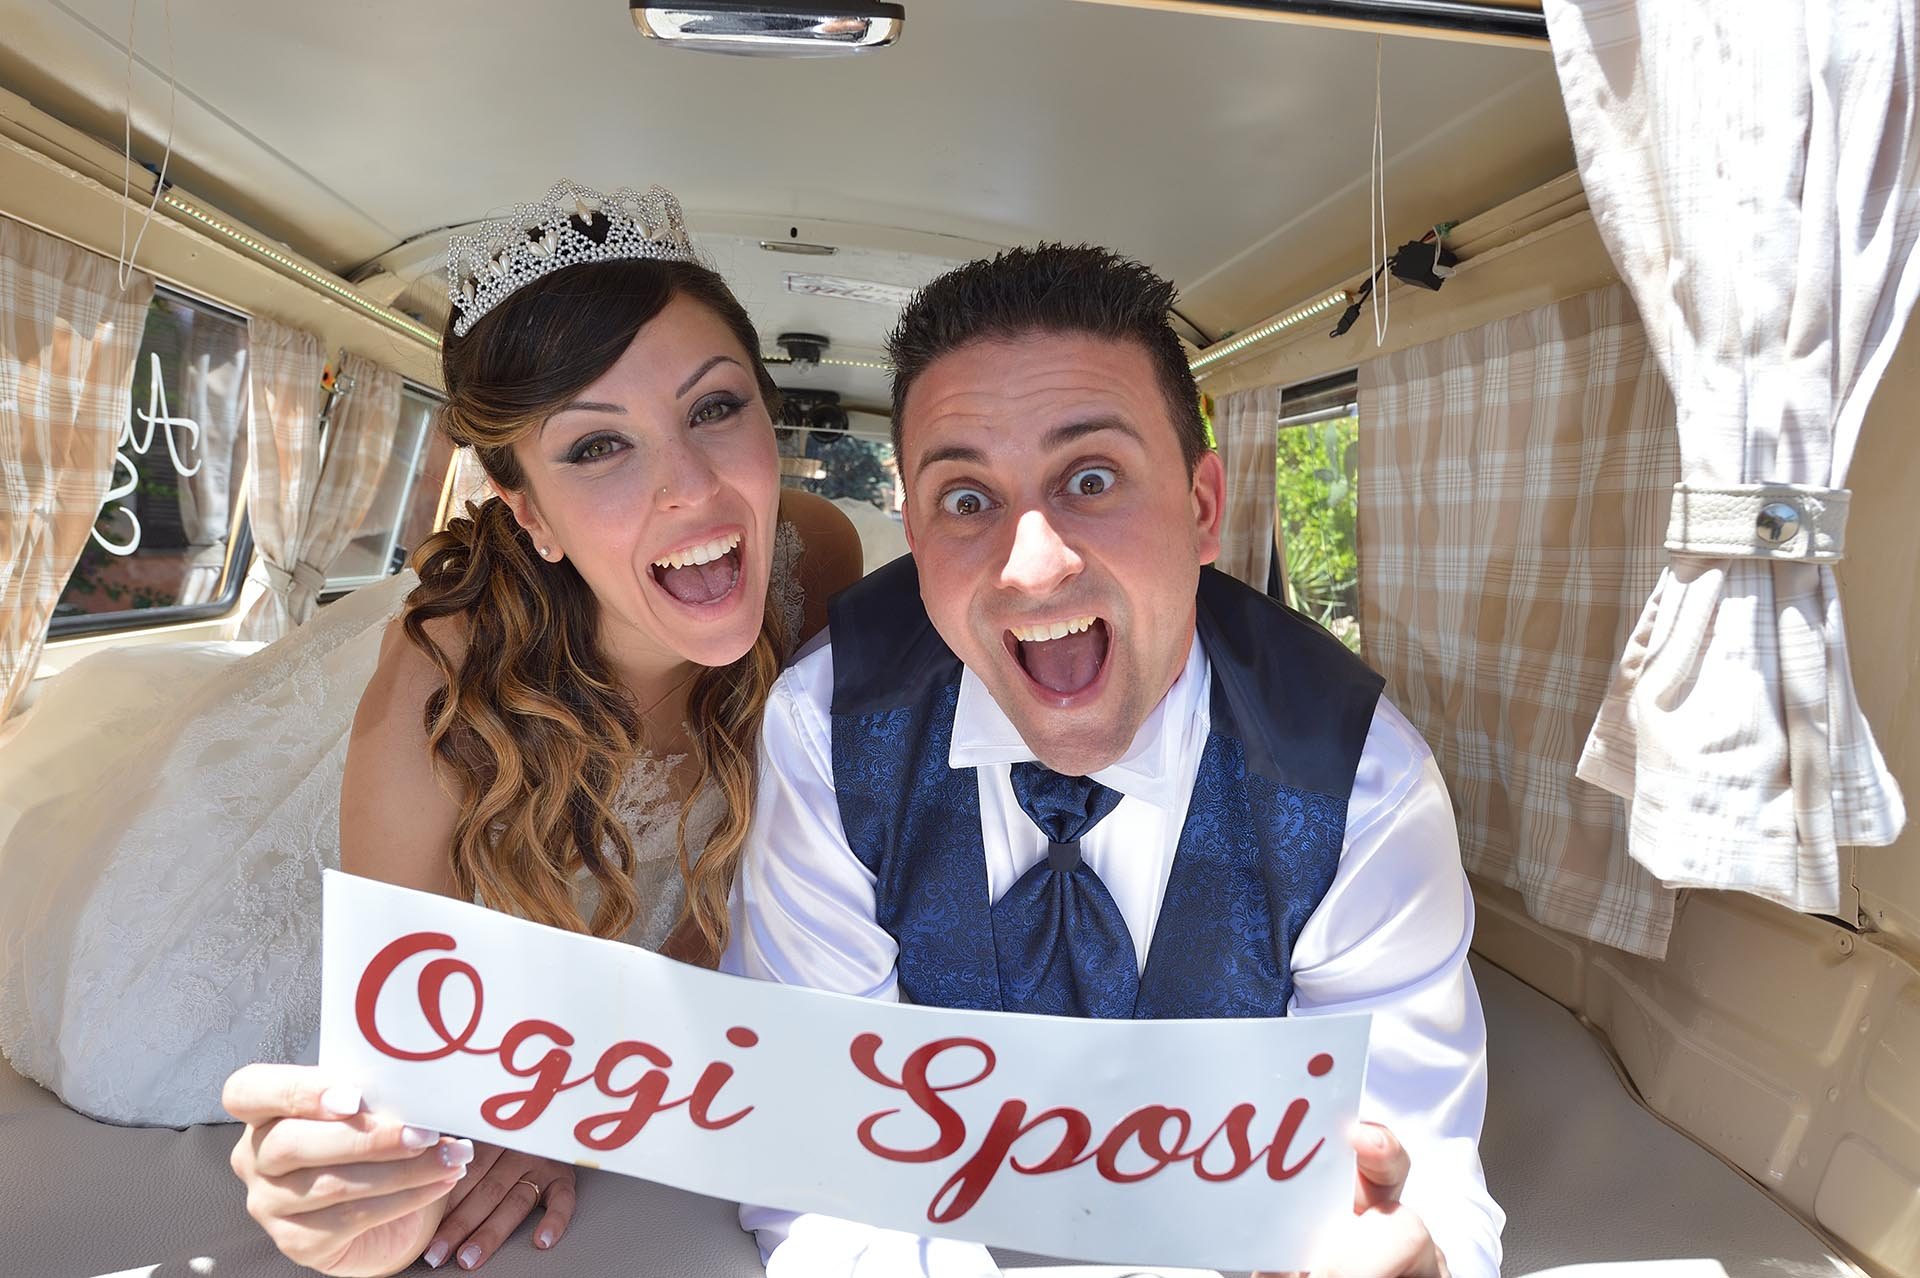 photo booth matrimonio pulmino volkswagen